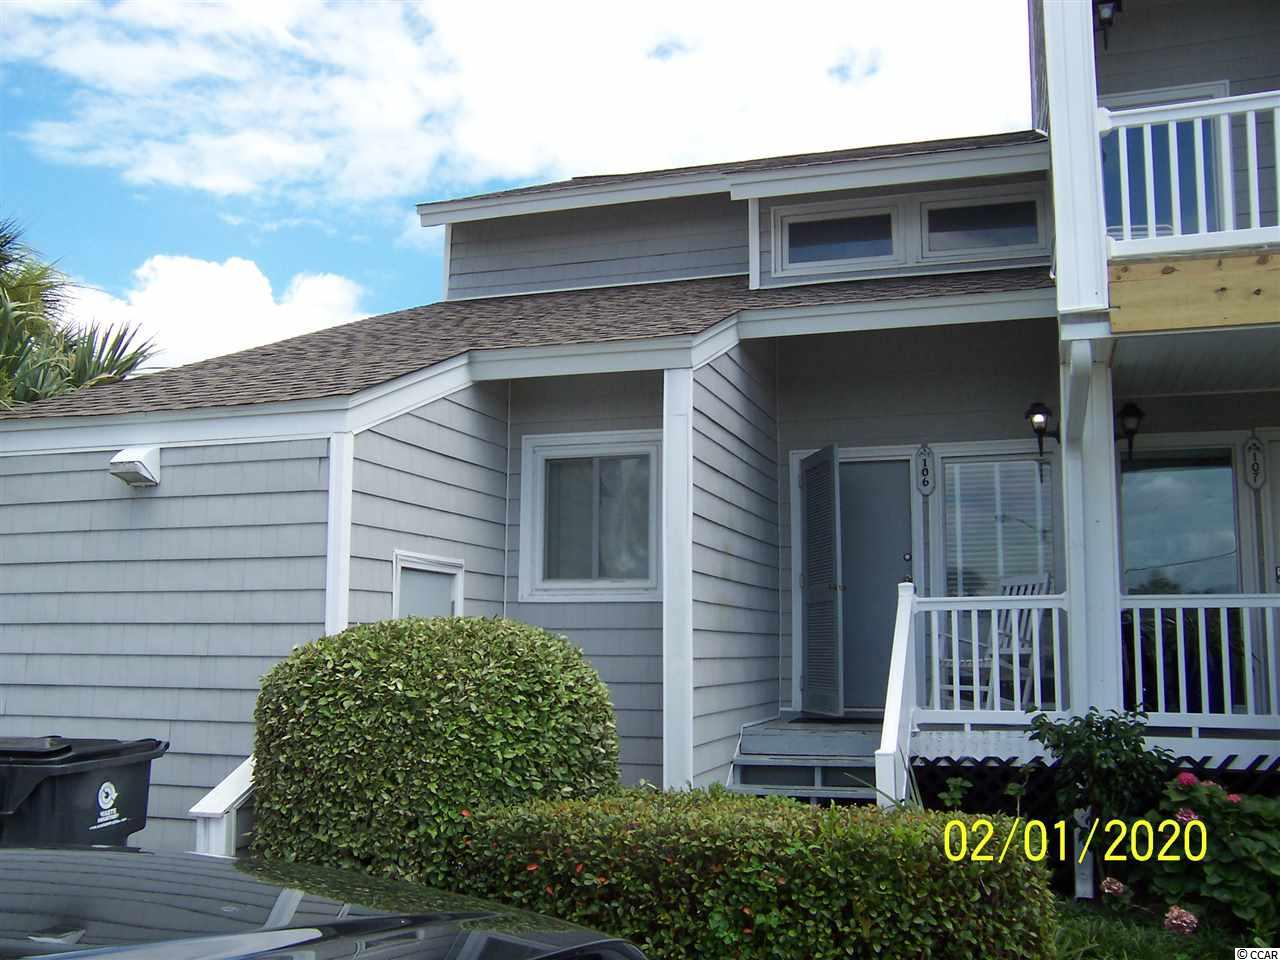 Doesn't get any better than the quiet living and great ocean views from this 2br 2 1/2 bath oceanfront townhouse condo. Sold completely furnished in this 99% recently remodeled and upgraded (2016) villa. Brand new roof and enlarged deck in 2019. New hot water heater 2020. LARGE backyard with great raised oceanside pool, grilling area and plenty of area to play games and hangout.Large master b/r has walk-in closet and LARGE walk-in ceramic shower! Also covered deck and outside patio sitting area off MBR. 2 large outside storage sheds(one in fr. and one in back). Full size w/d closet.Buyer responsible for verifying any measurements.